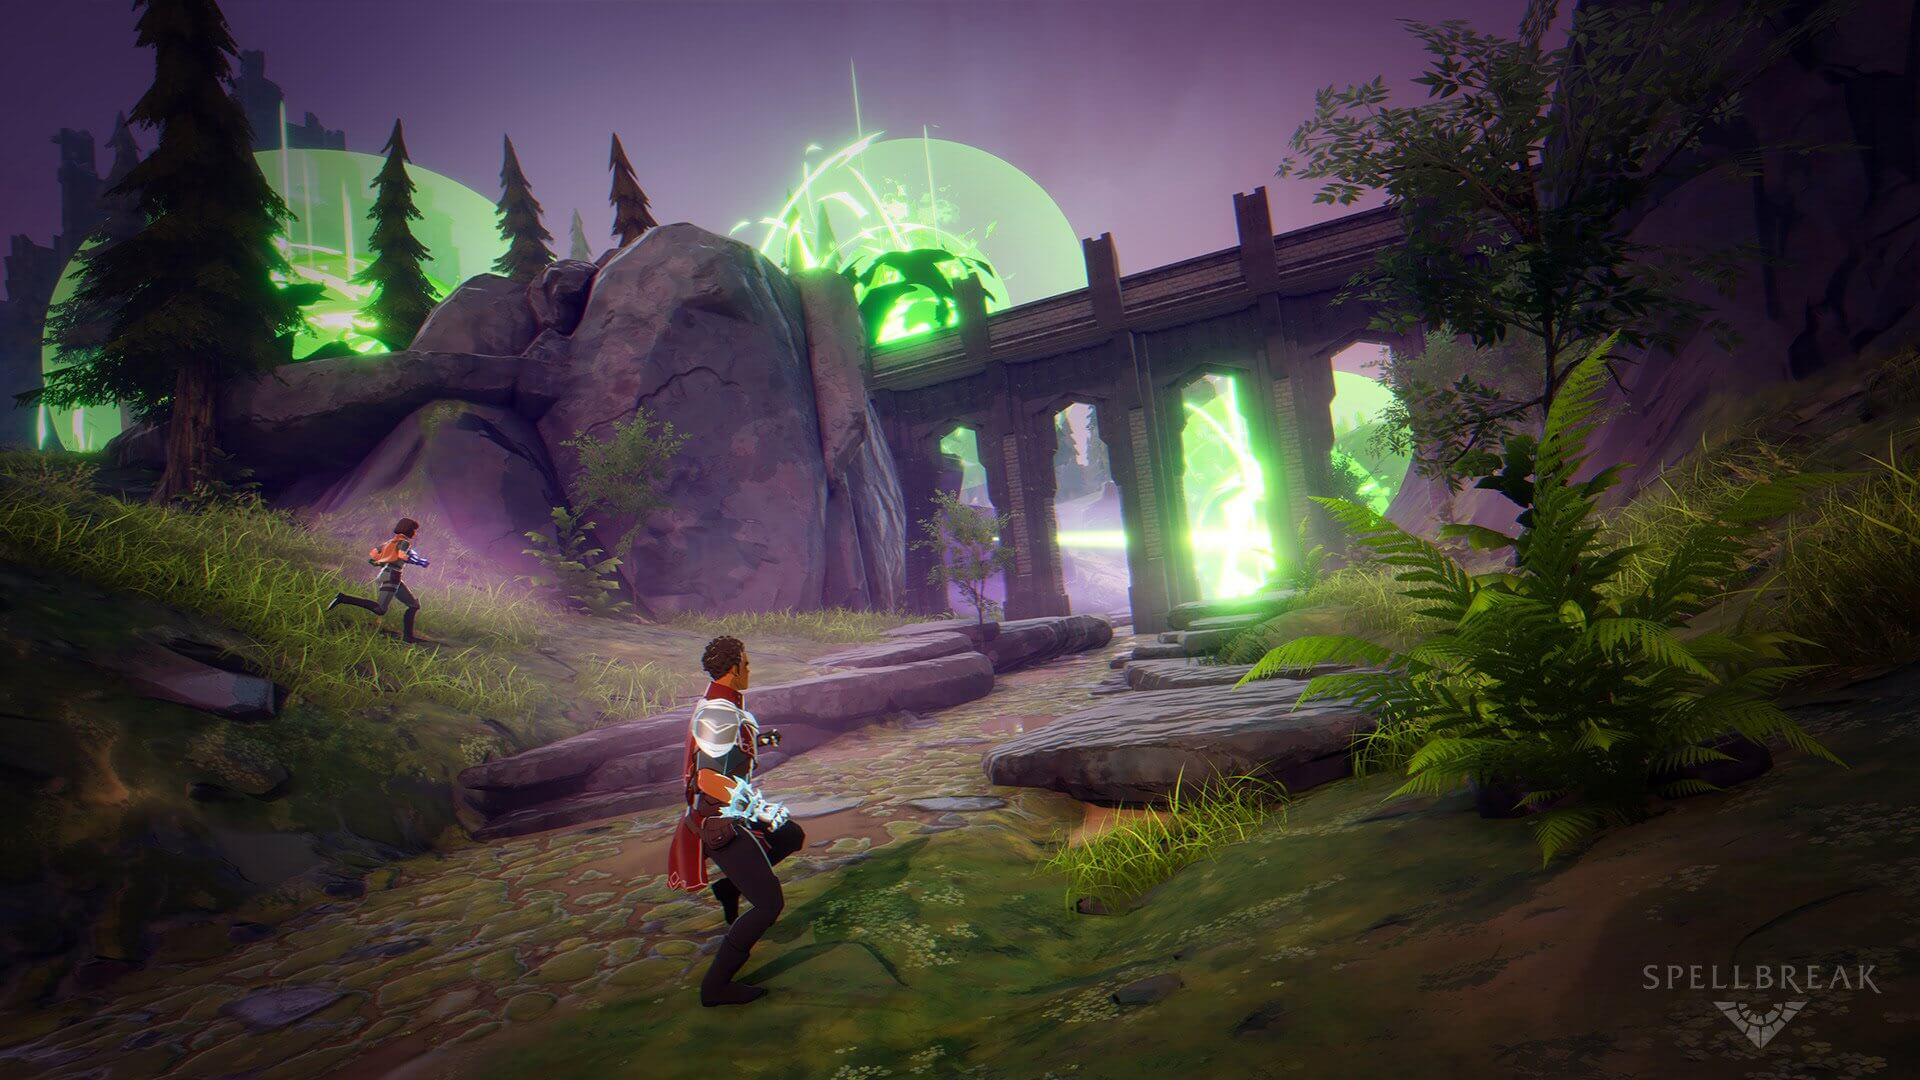 Spellbreak Casts Onto PC and Consoles Today